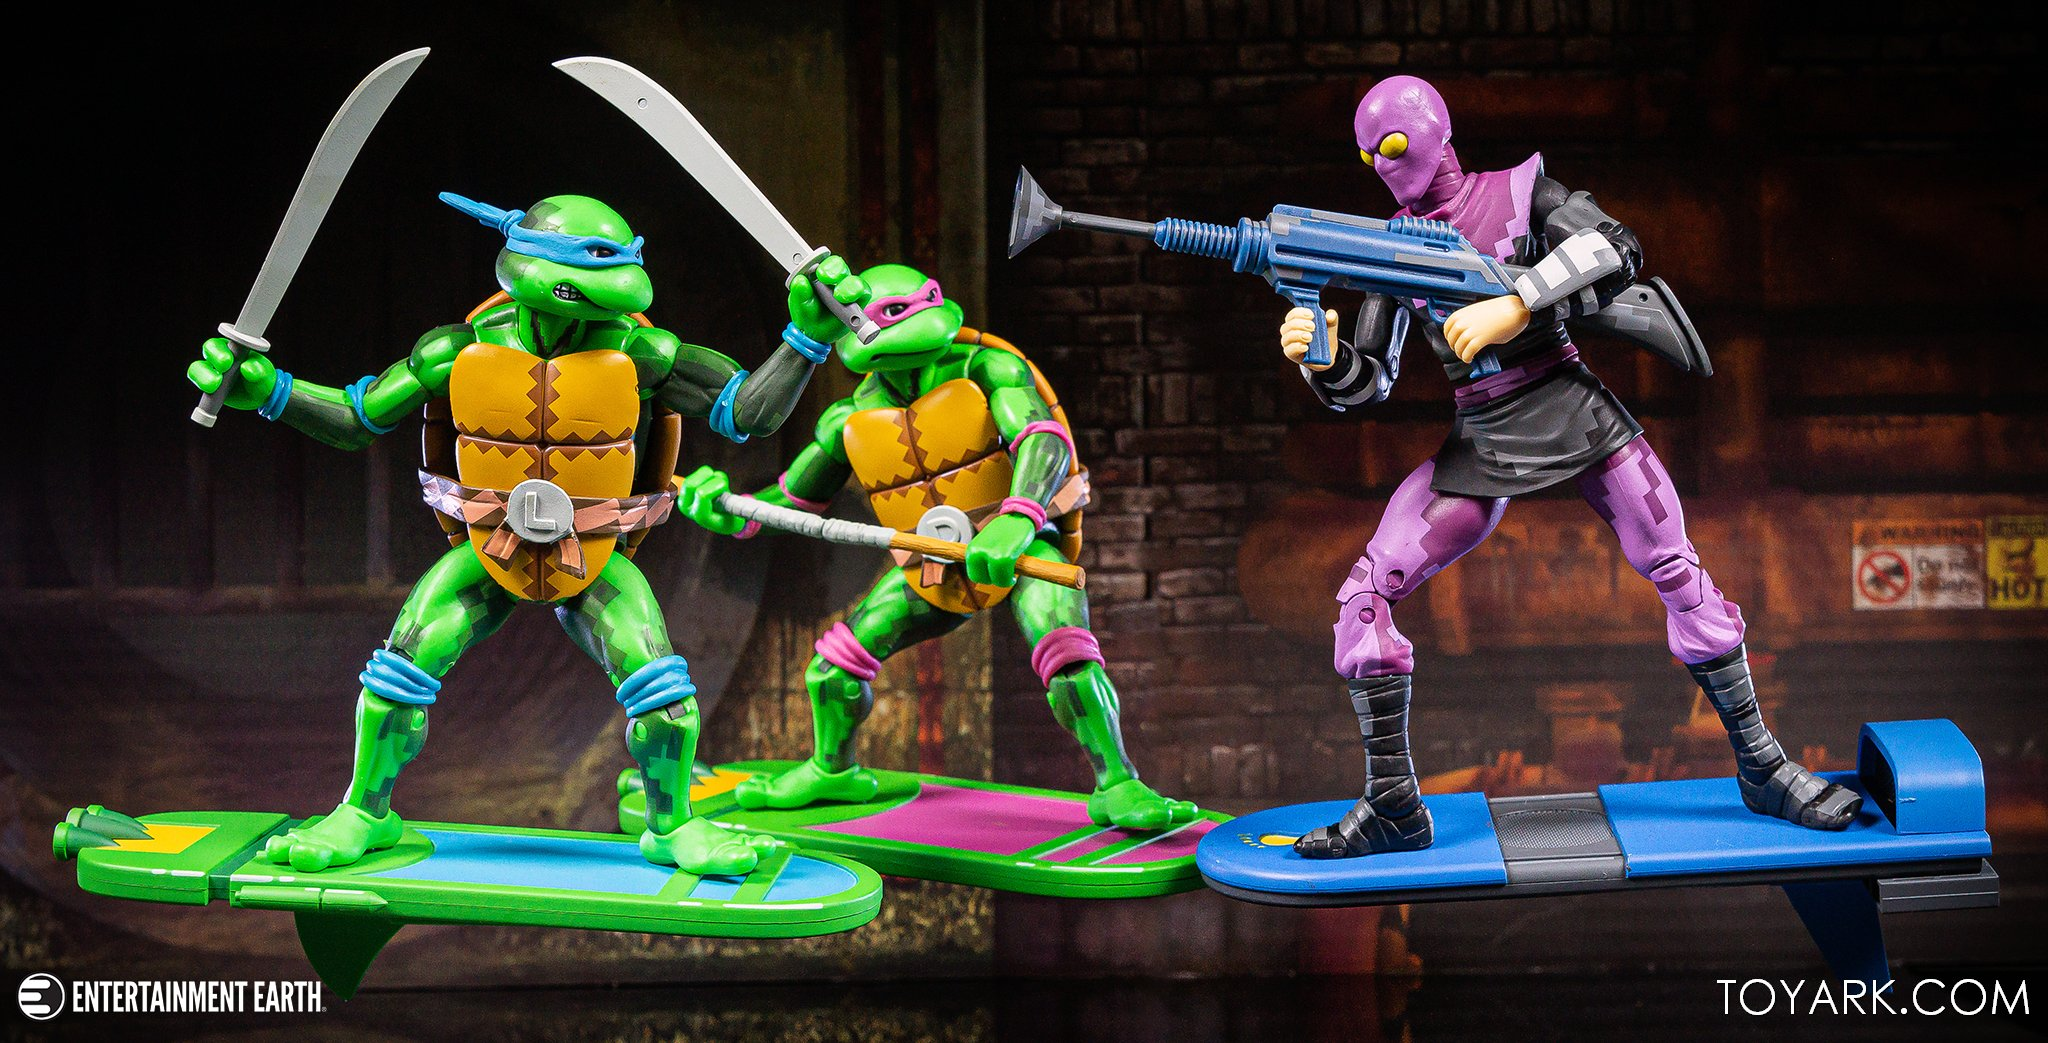 https://news.toyark.com/wp-content/uploads/sites/4/2020/06/NECA-TMNT-Turtles-In-Time-S1-080.jpg